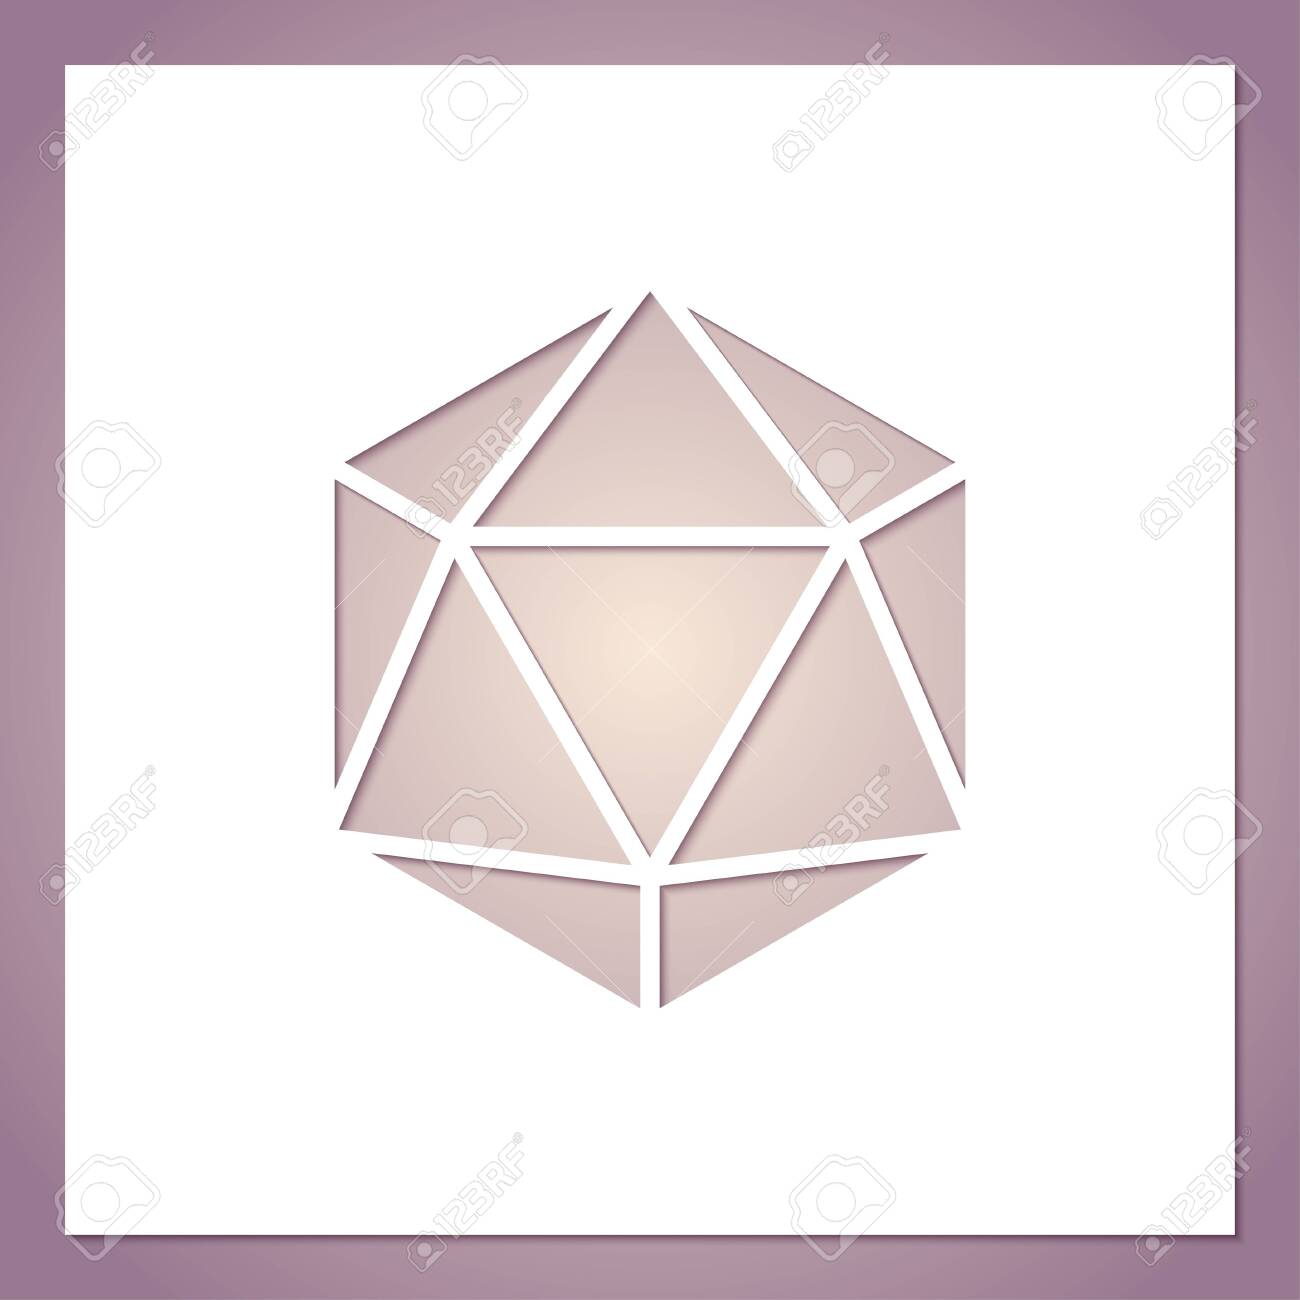 Card with a hole in the form of a geometric figure. Futuristic symmetric polygon. Template for laser or plotter cutting. - 144027836